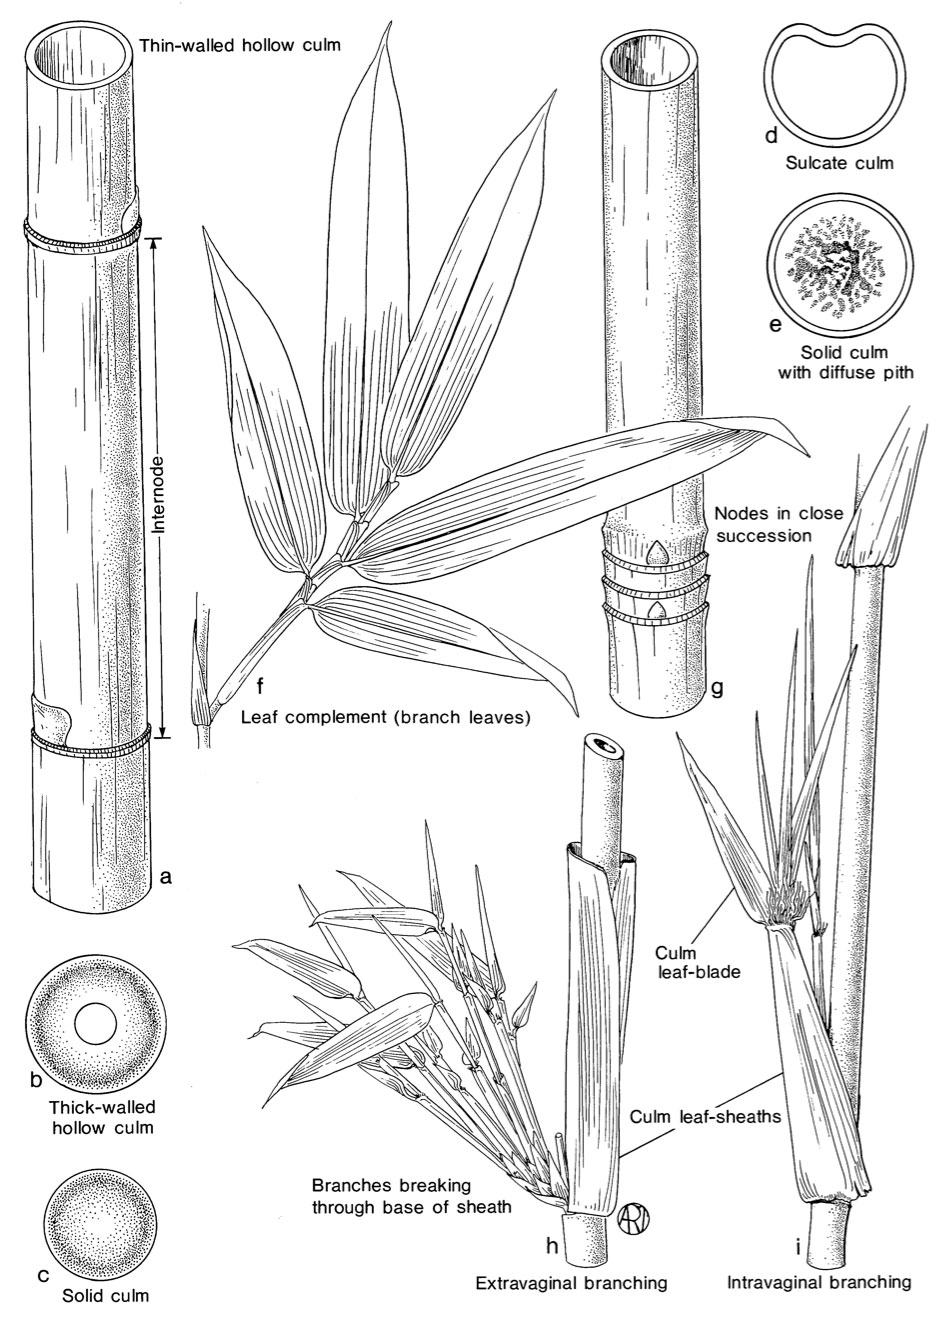 identification-bamboo-culm.jpg